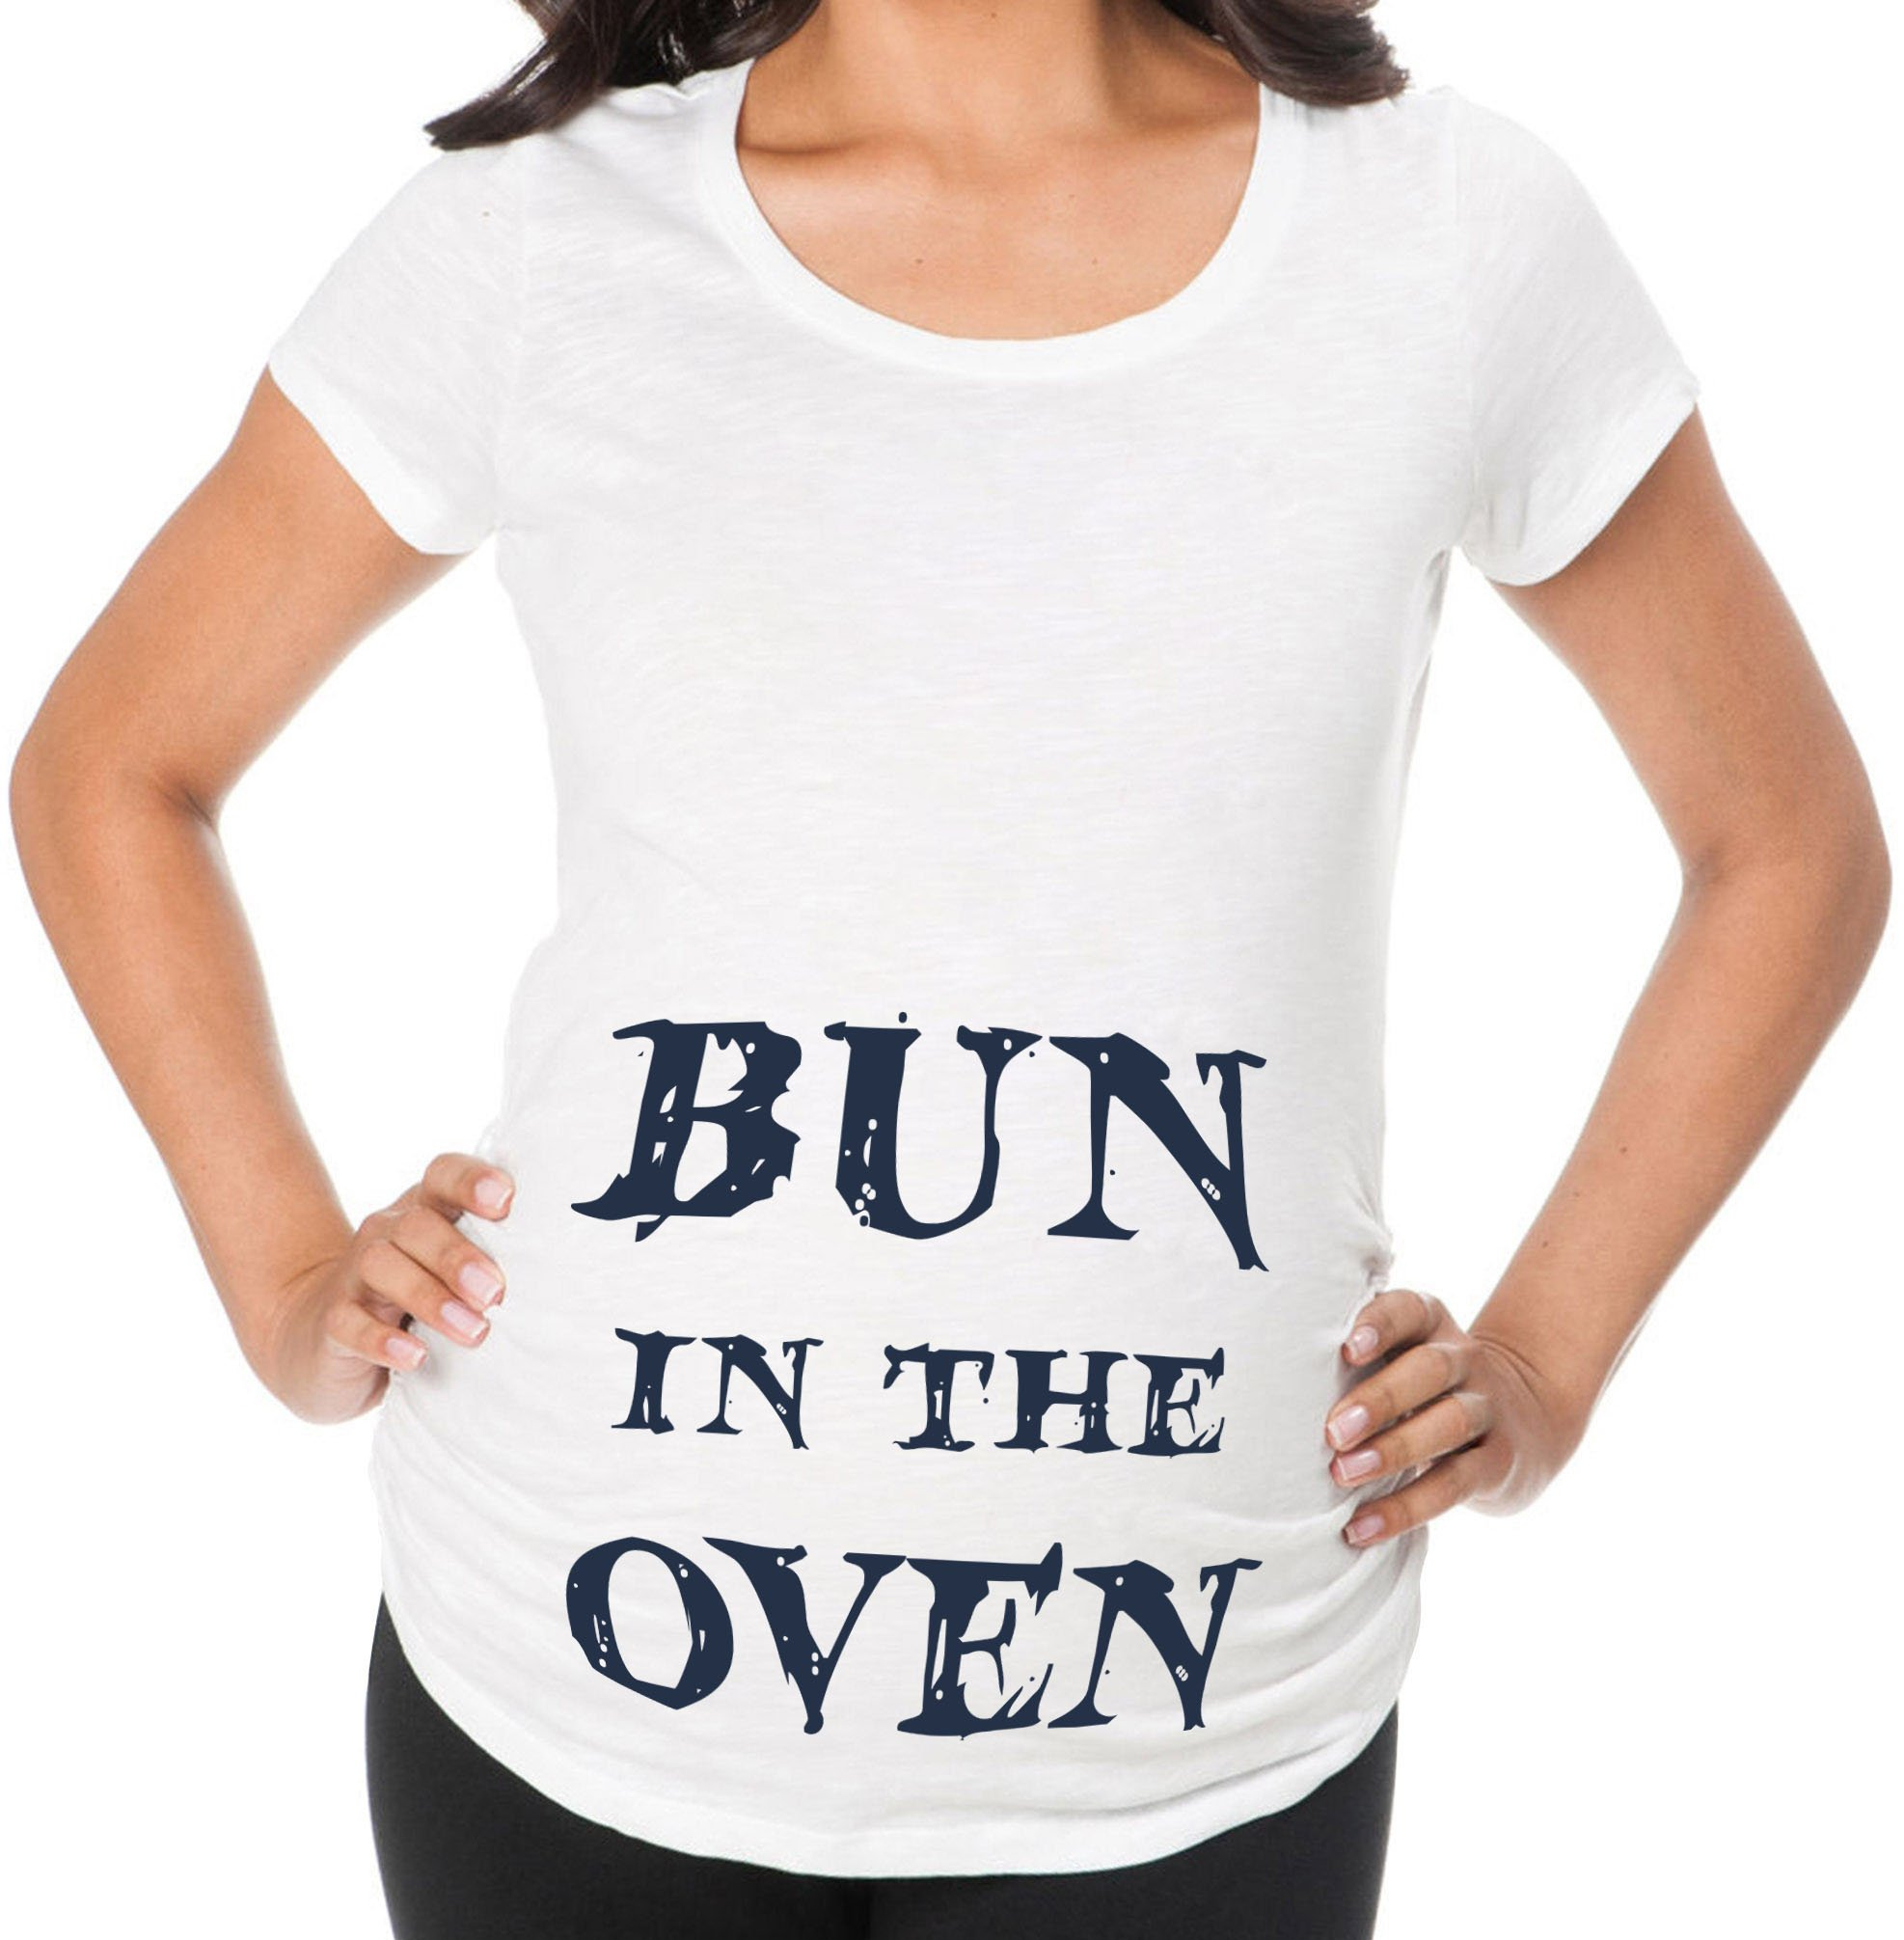 Awkward Styles Bun in The Oven Hilarious Pregnancy Announcement Maternity T Shirt Baby Shower Mom to Be White M